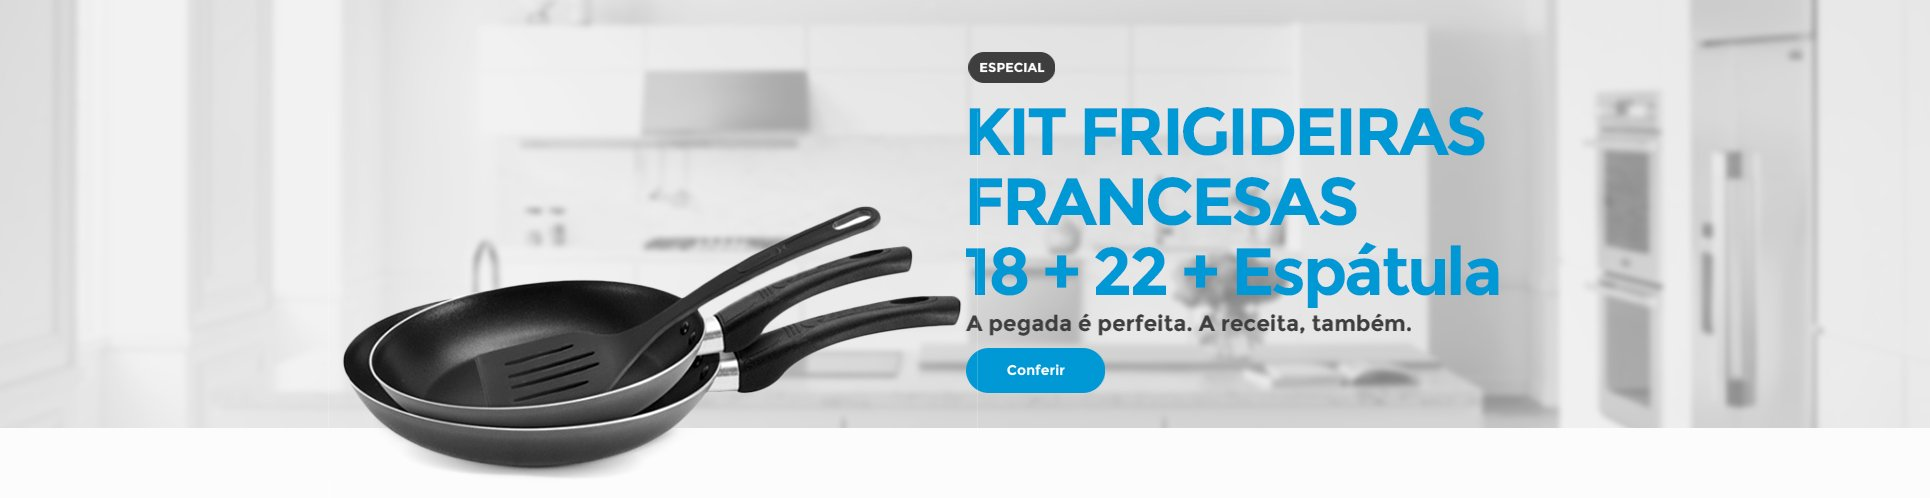 Kit Frigideira Francesa